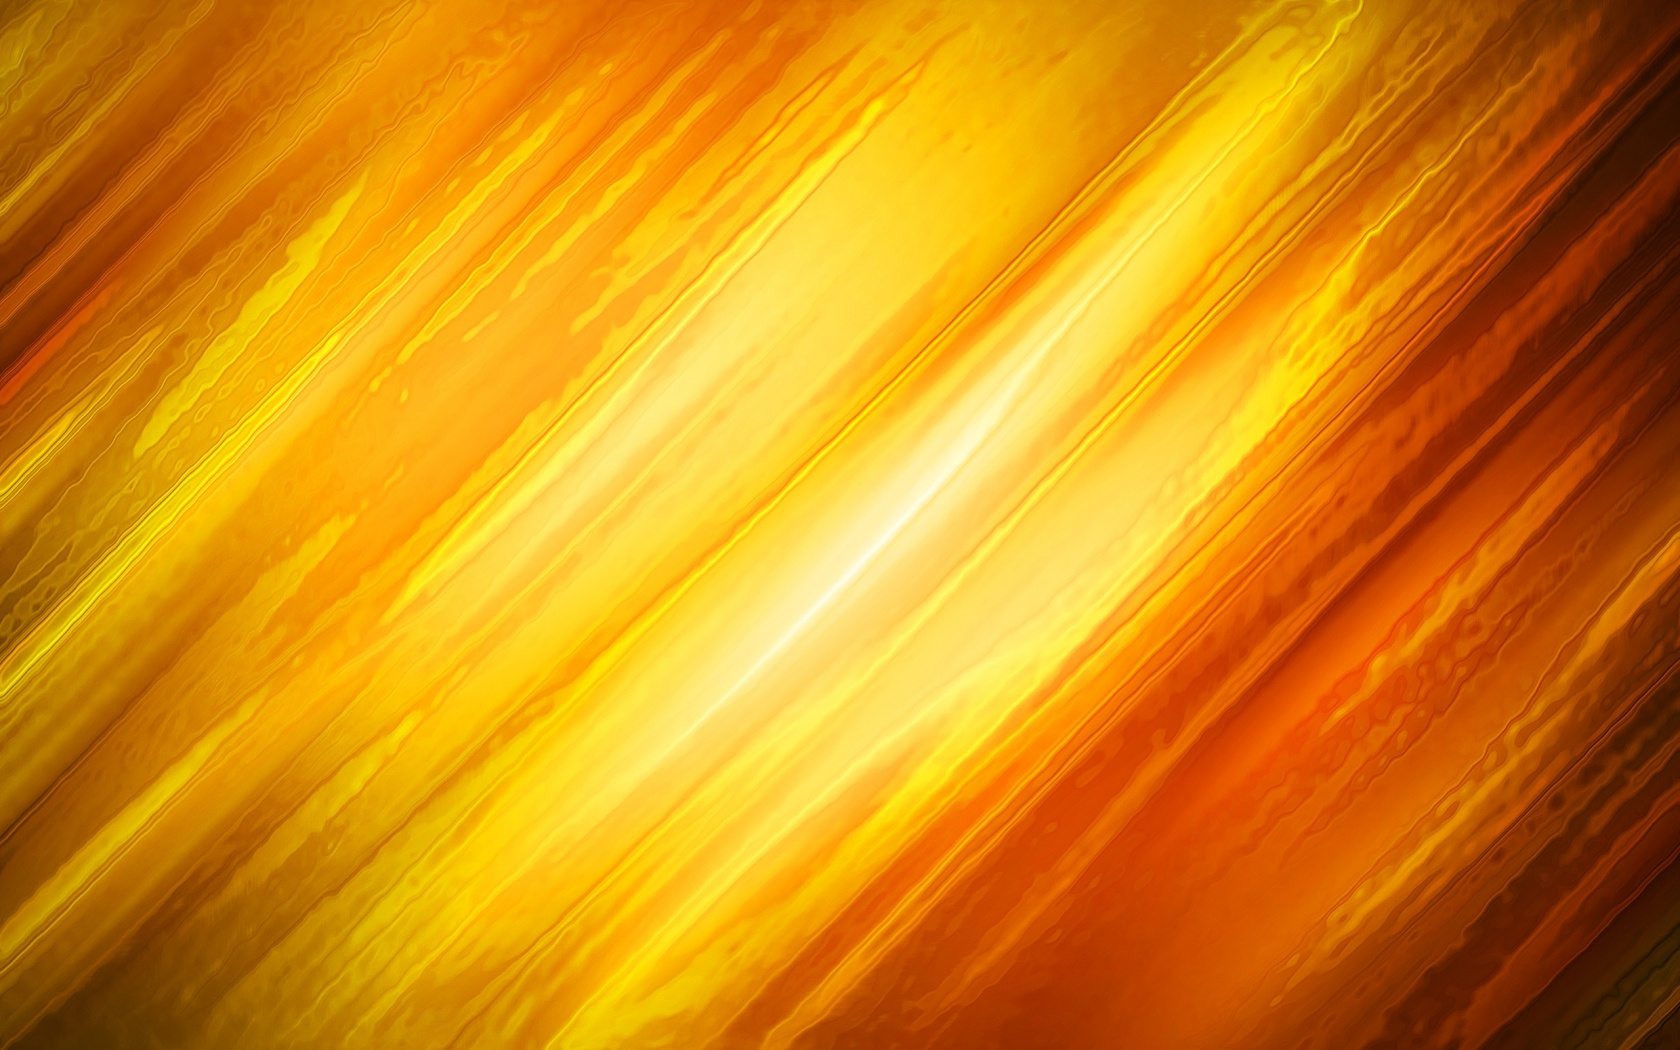 abstract yellow and orange